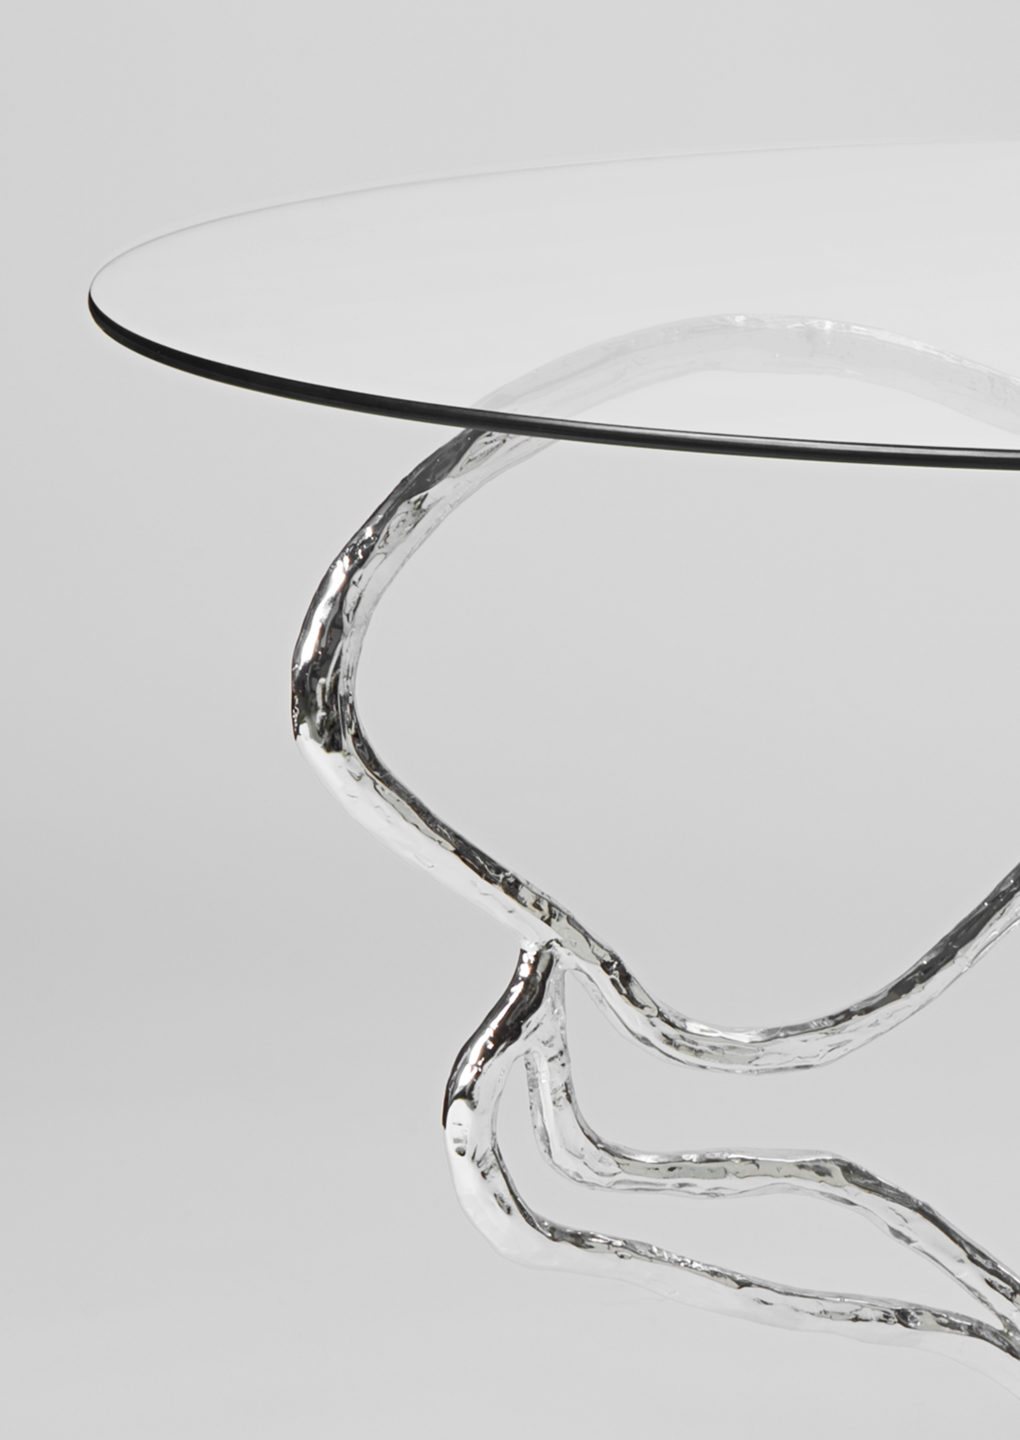 WHIMSY-table-1-nicole-fuller-product-information